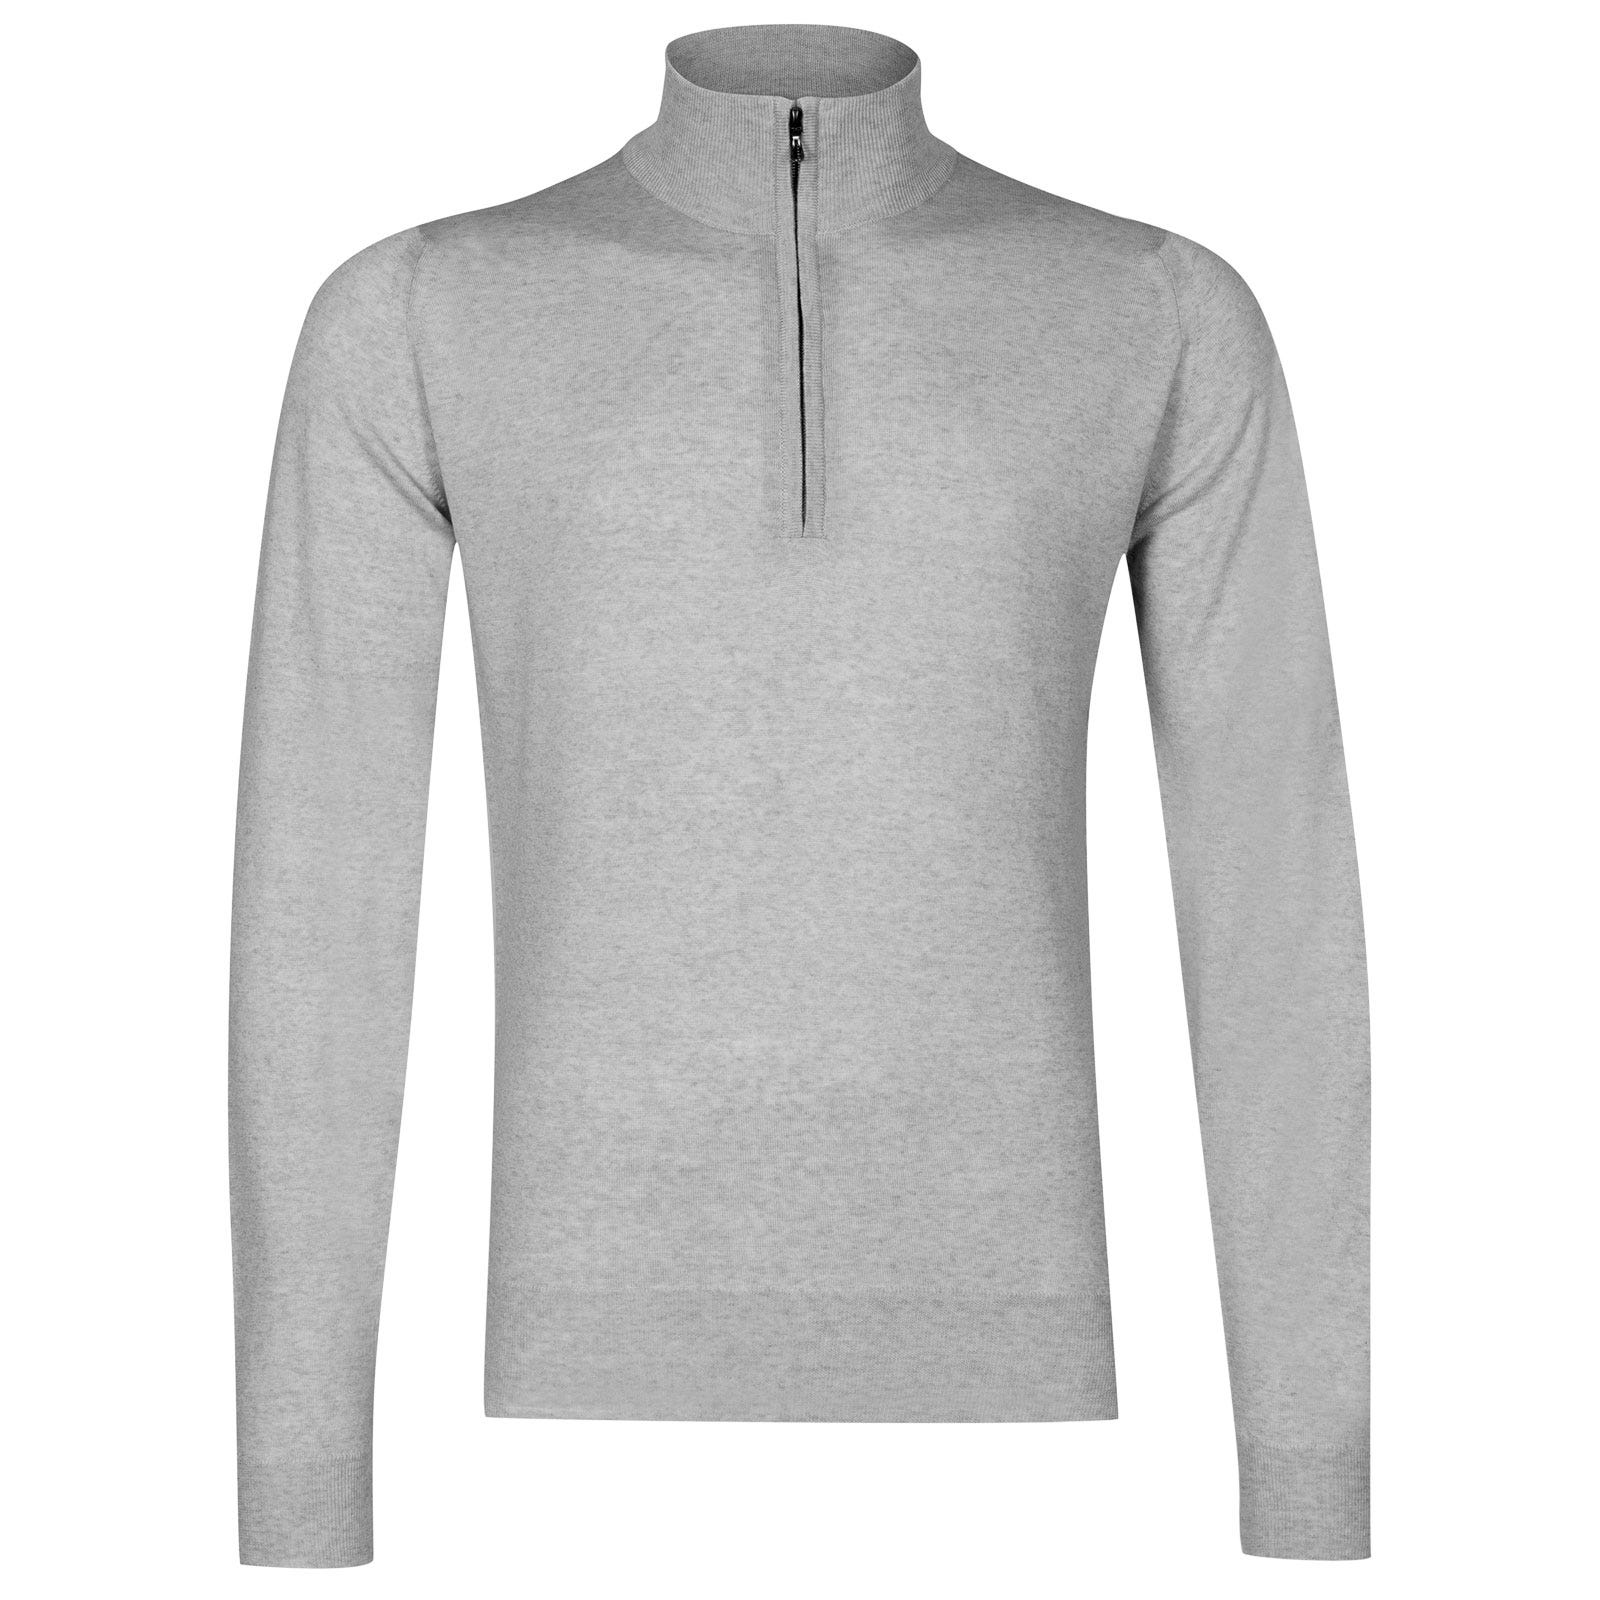 John Smedley Barrow Merino Wool Pullover in Bardot Grey-S